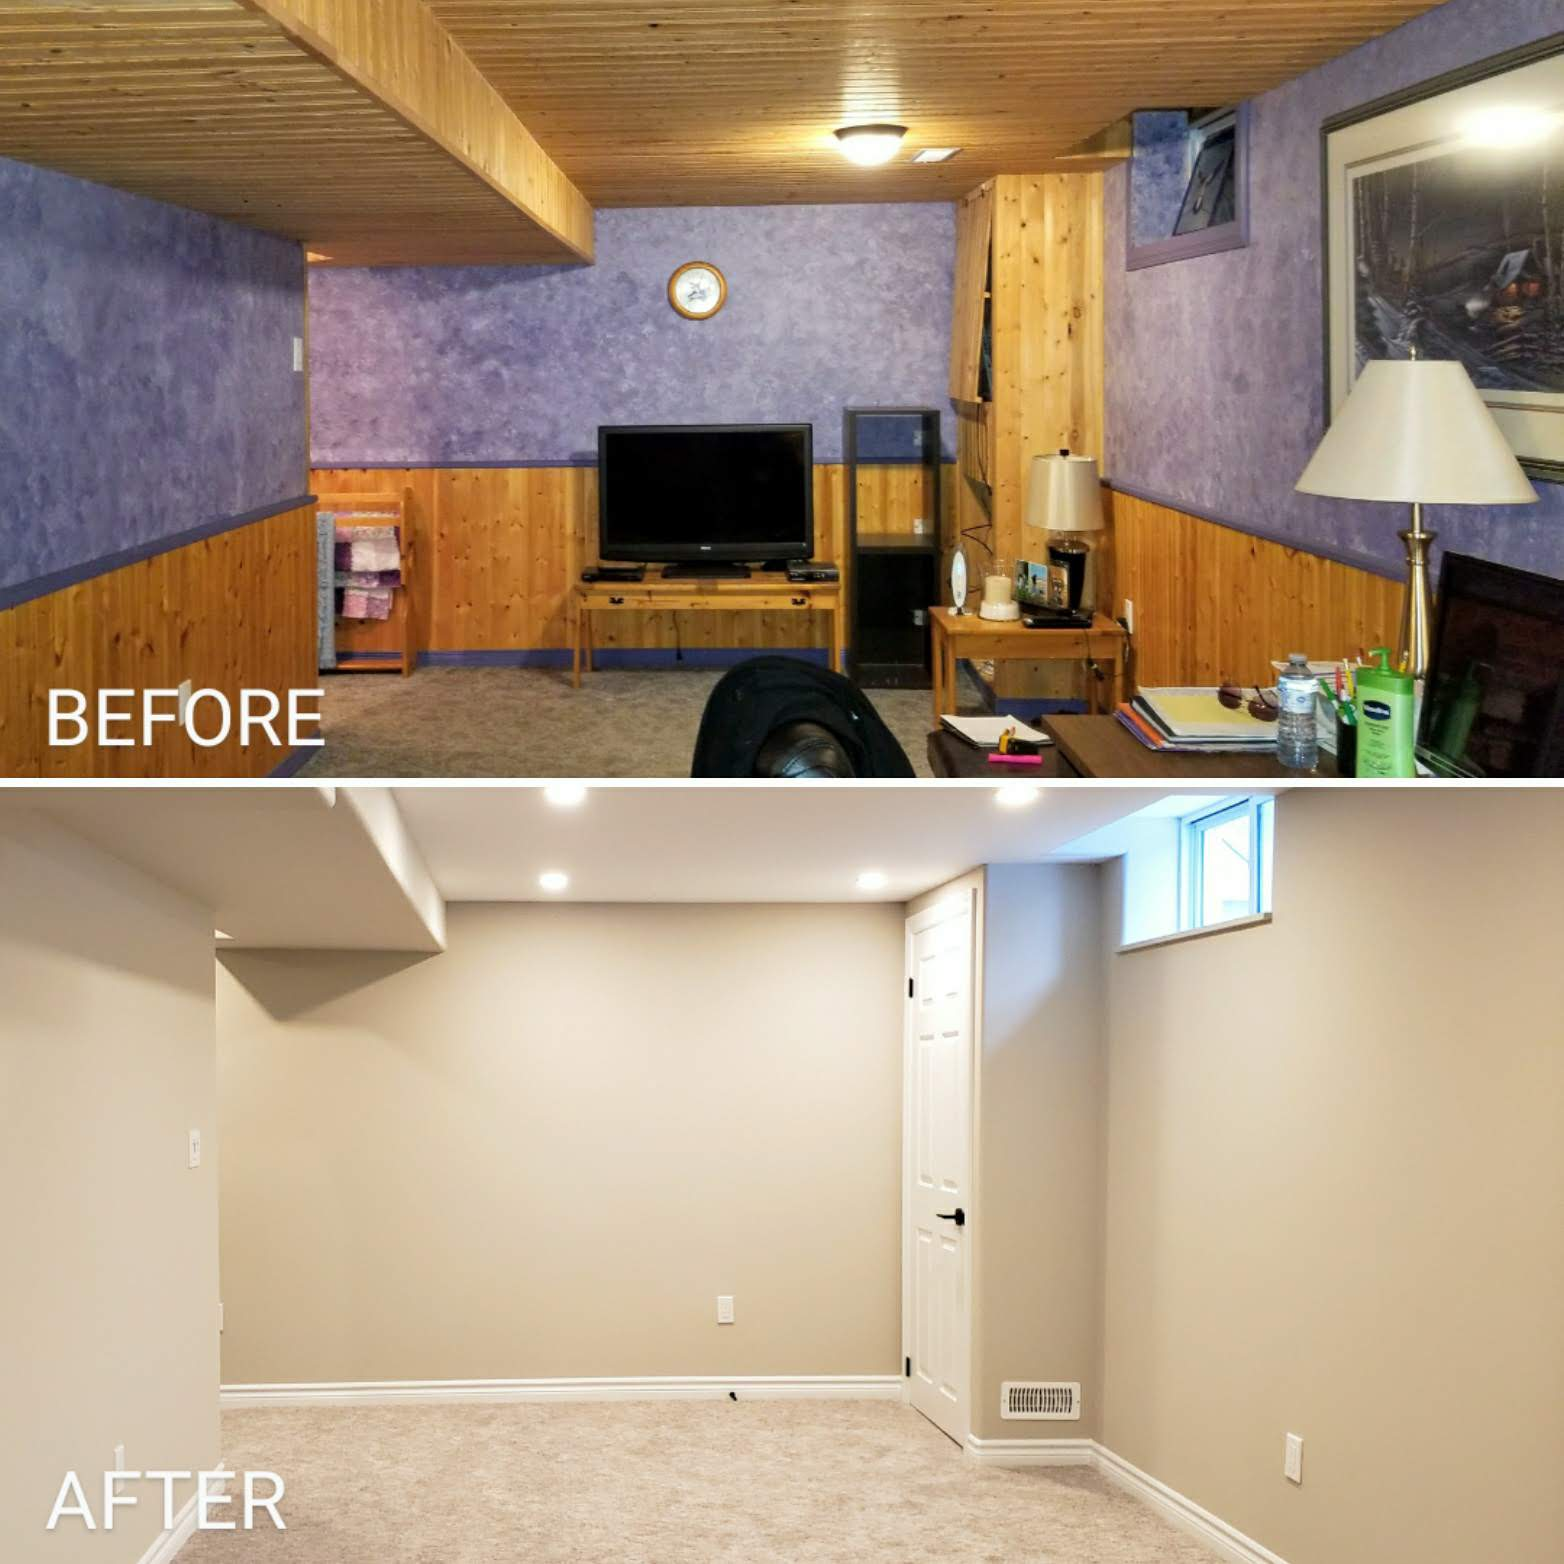 Before and after basement renovation by Germano Creative Interior Contracting Ltd.